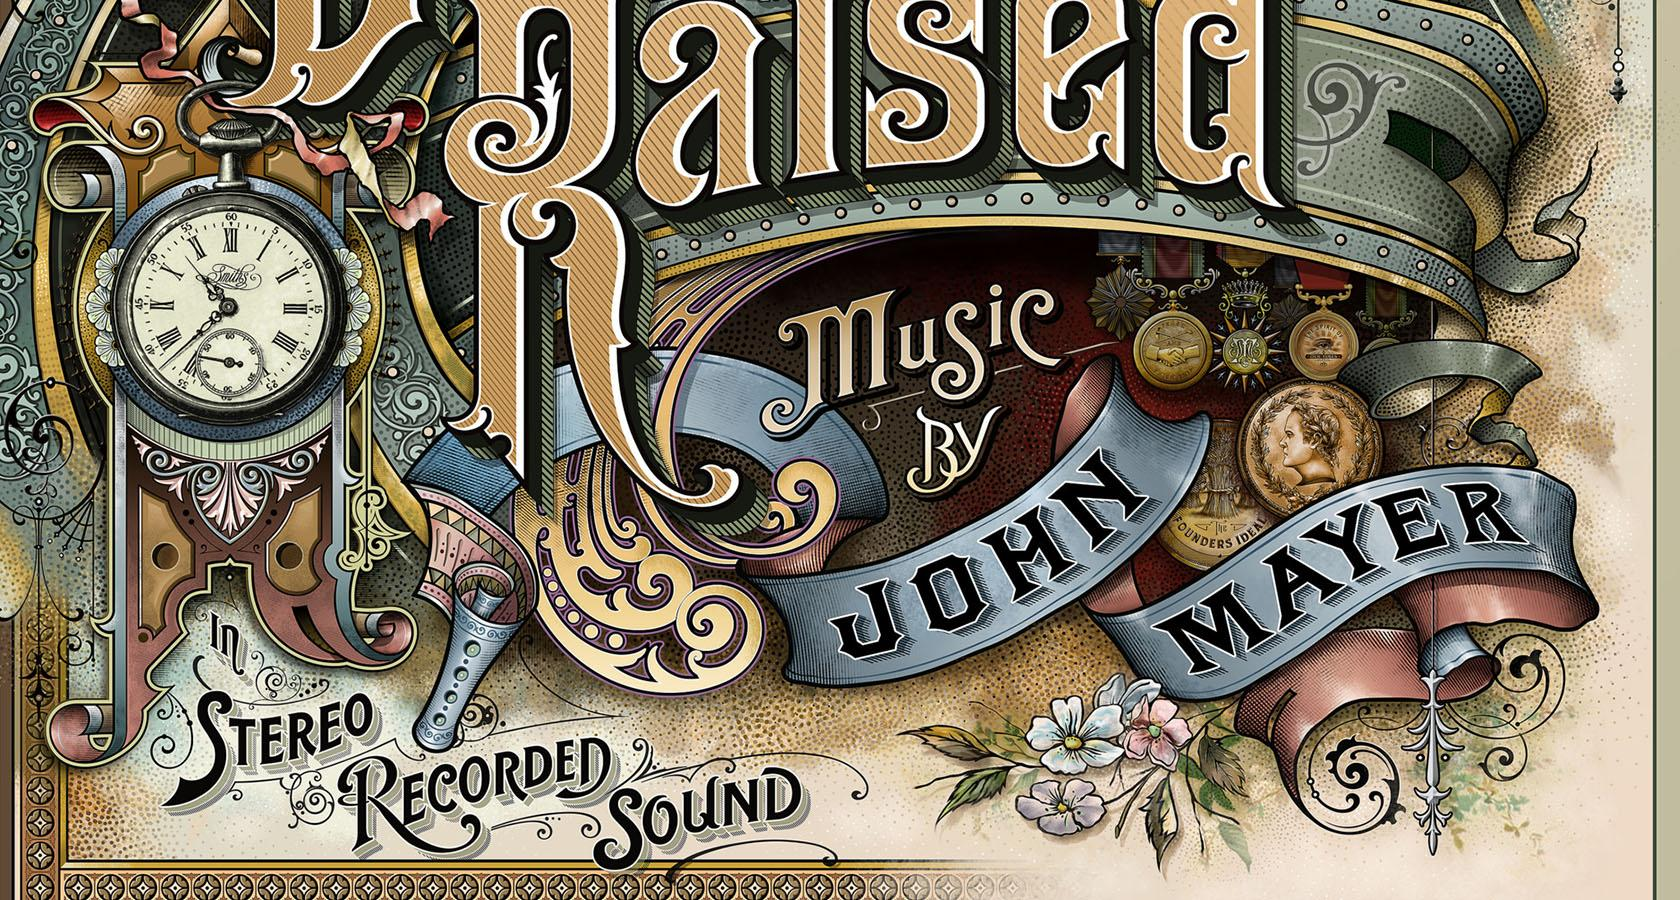 david smith - lettering en el album cover de john mayer